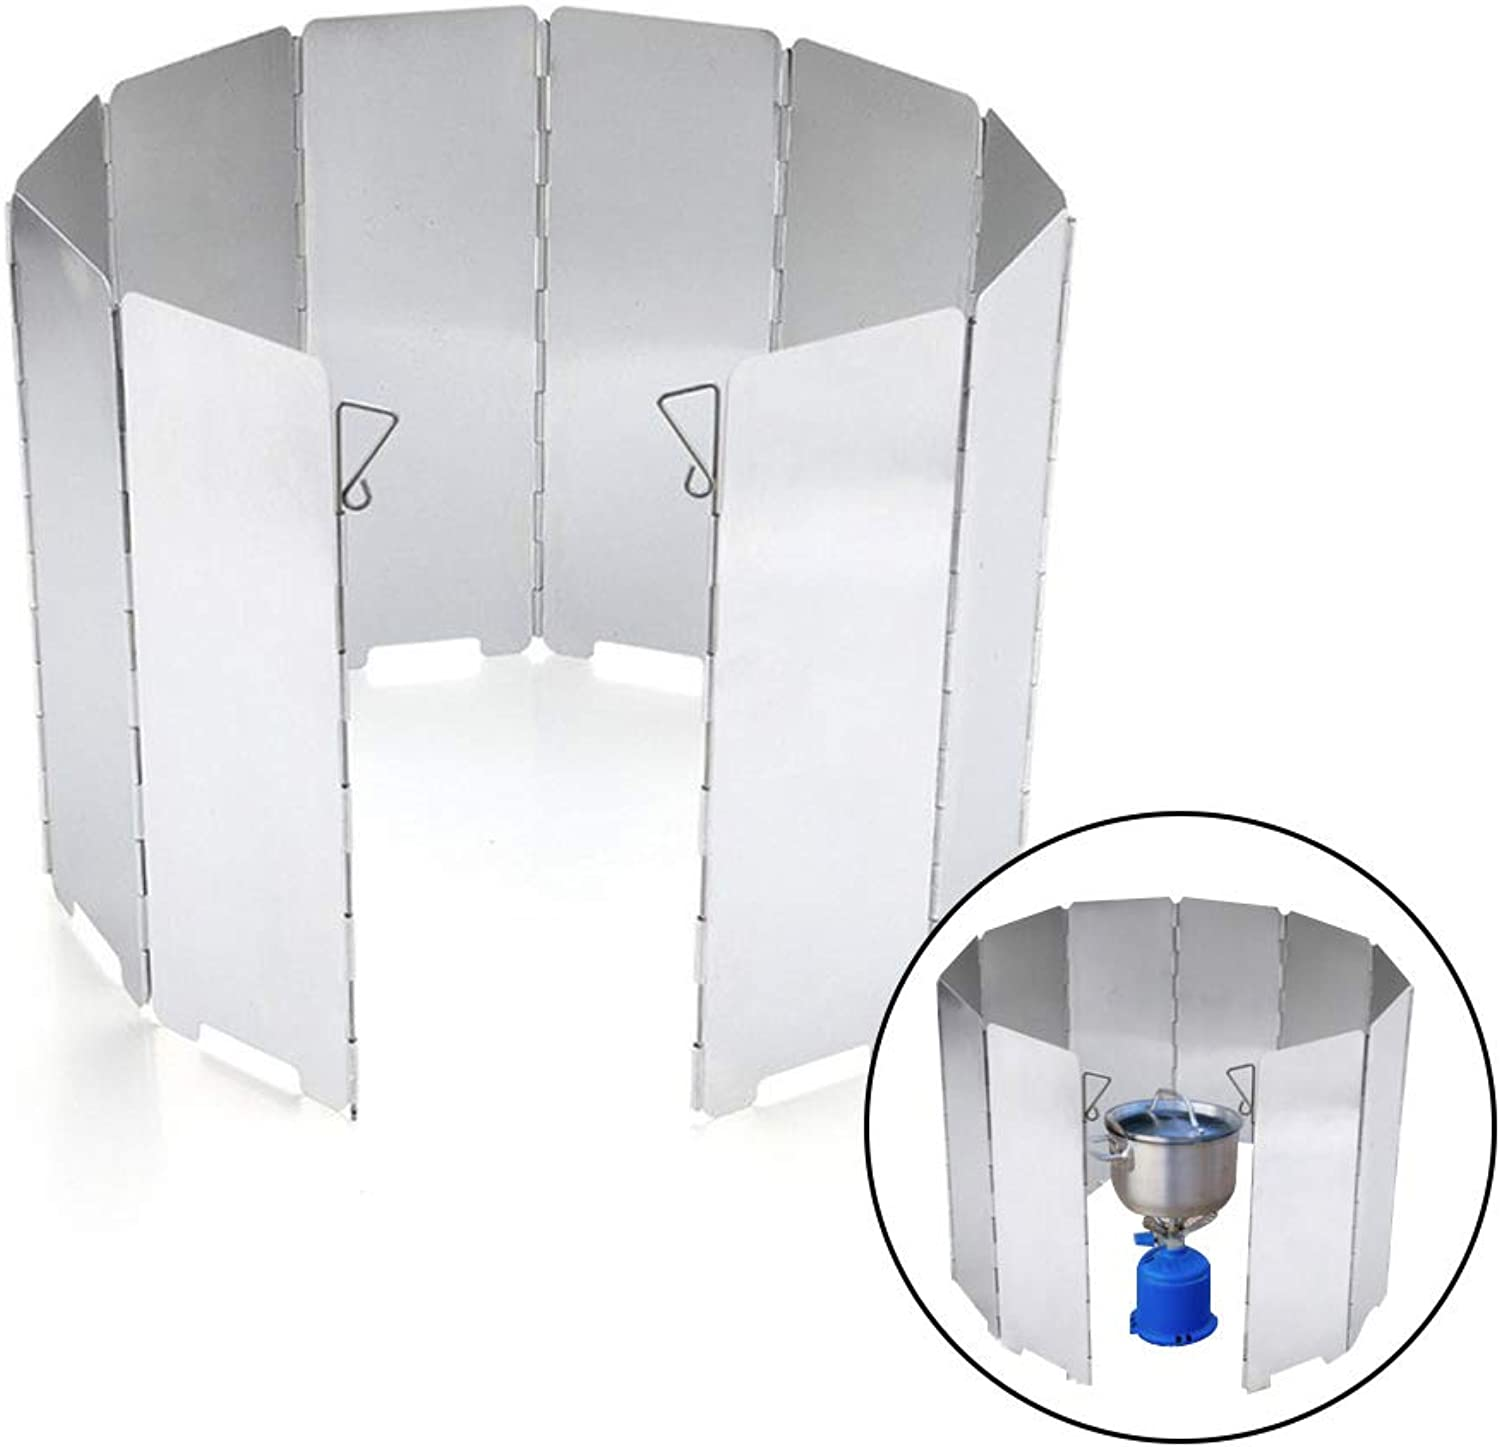 OMUKY Camp Stove Windscreen Outdoor Grill Stove Accessories Aluminum Alloy Lightweight Foldable Stove Cooker Windshield 10 Plates